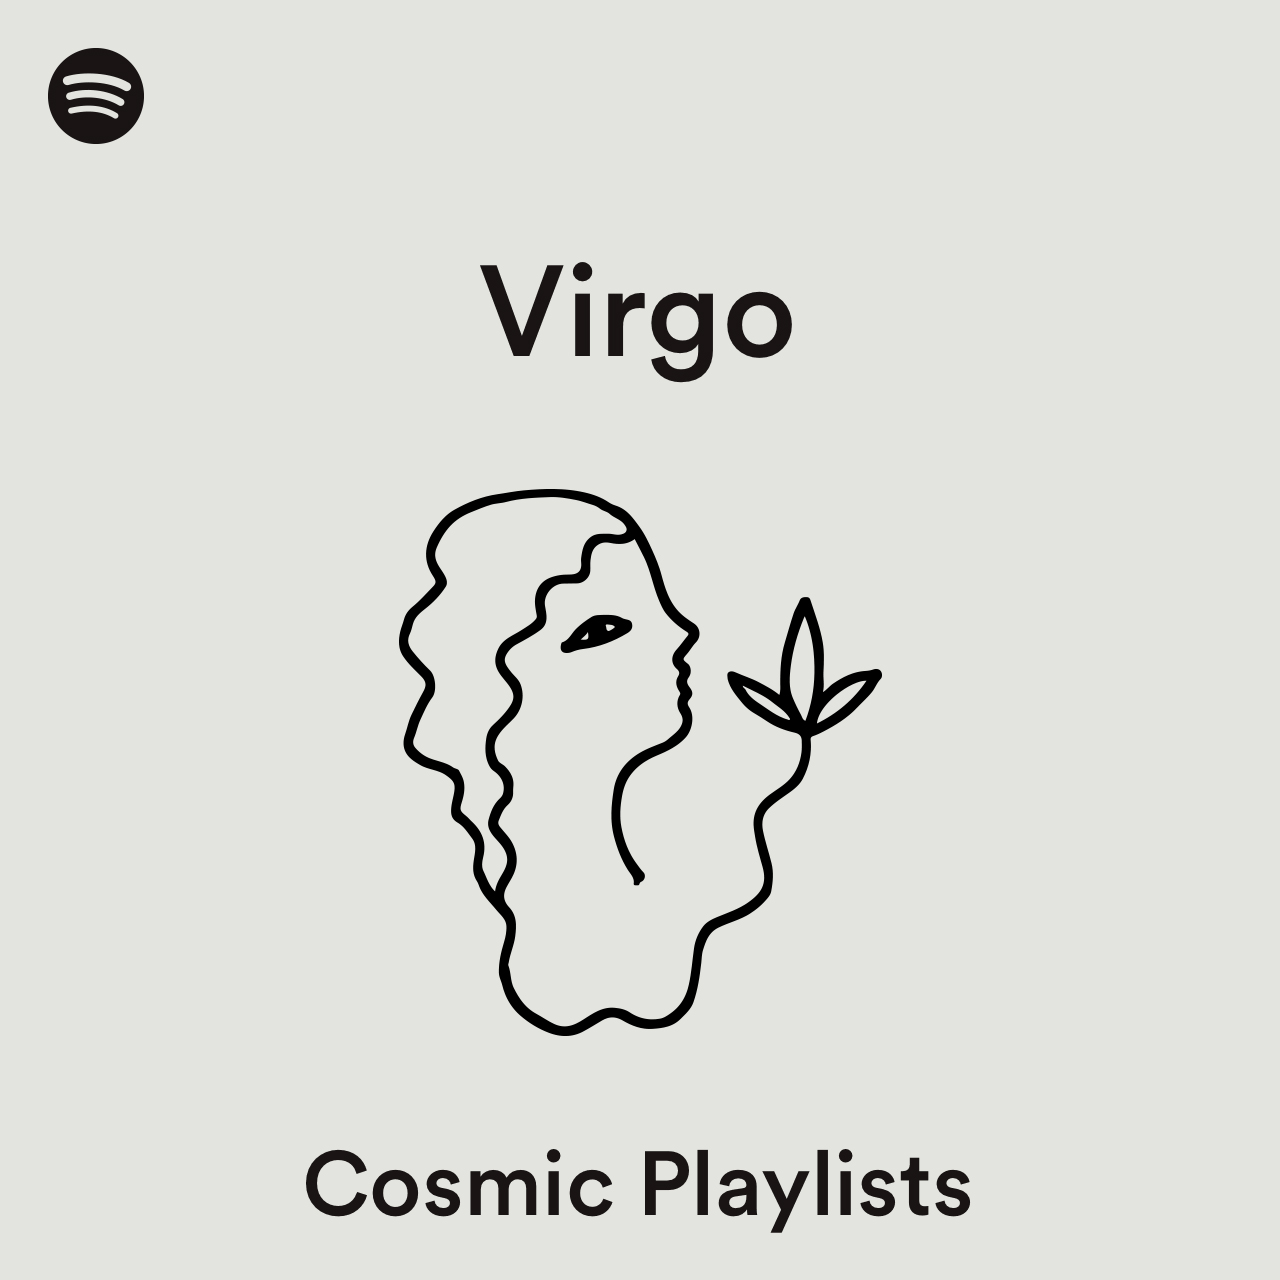 190110-Astrology-PlaylistCovers-03_0005_Virgo